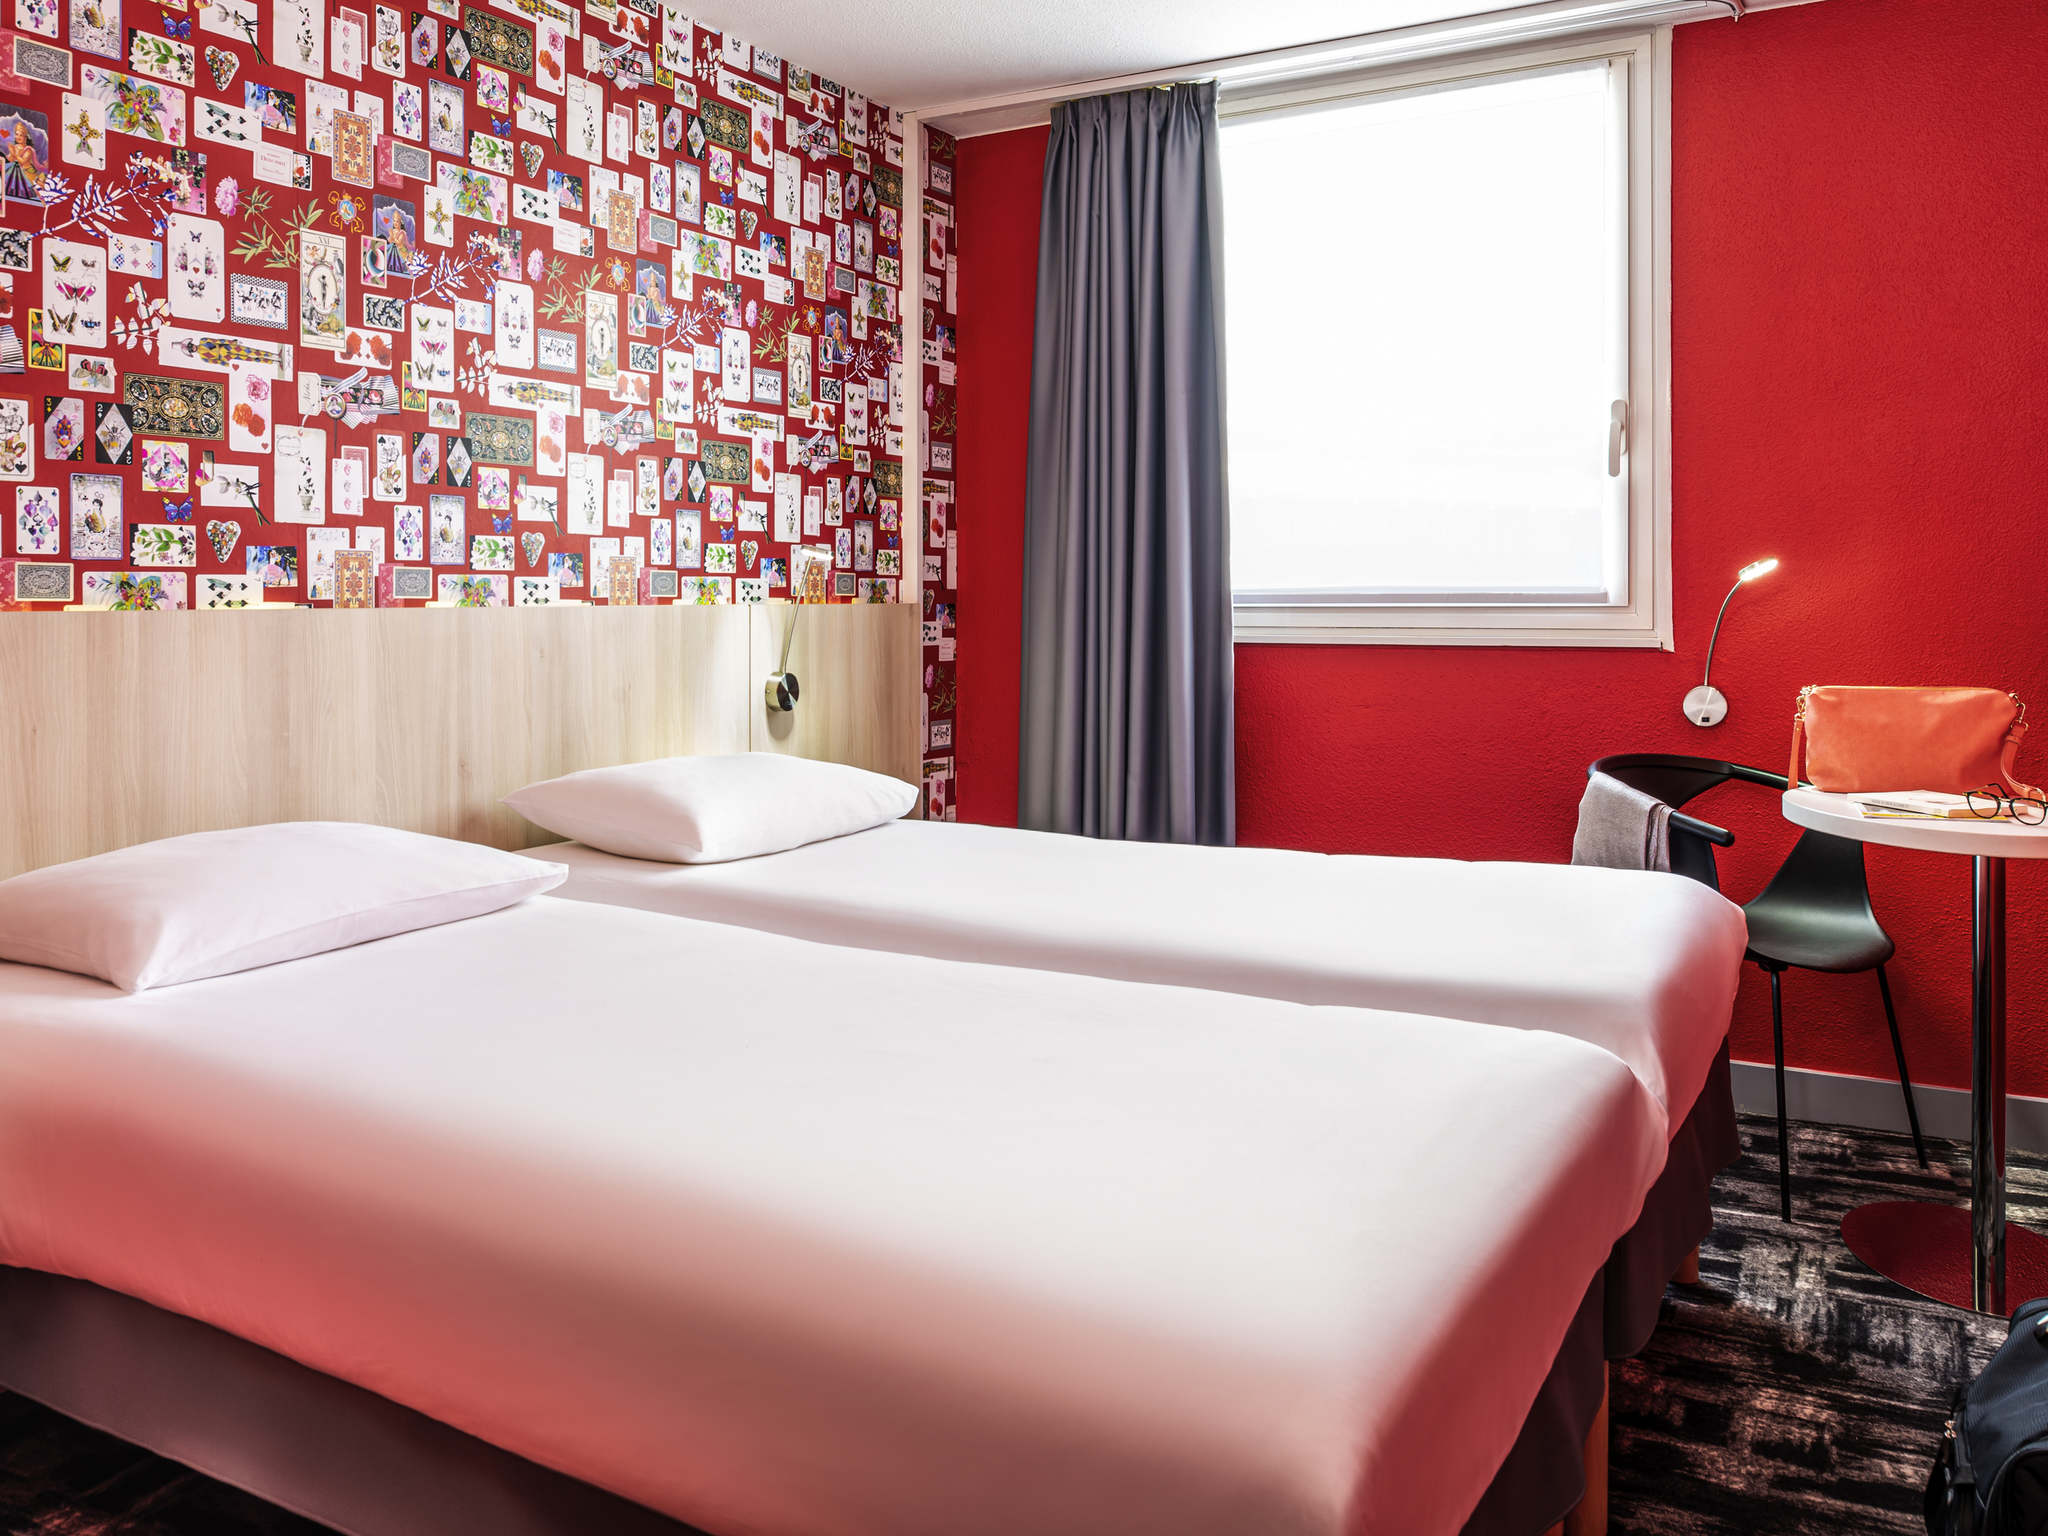 Hotel Ibis Reims Centre Cathedrale